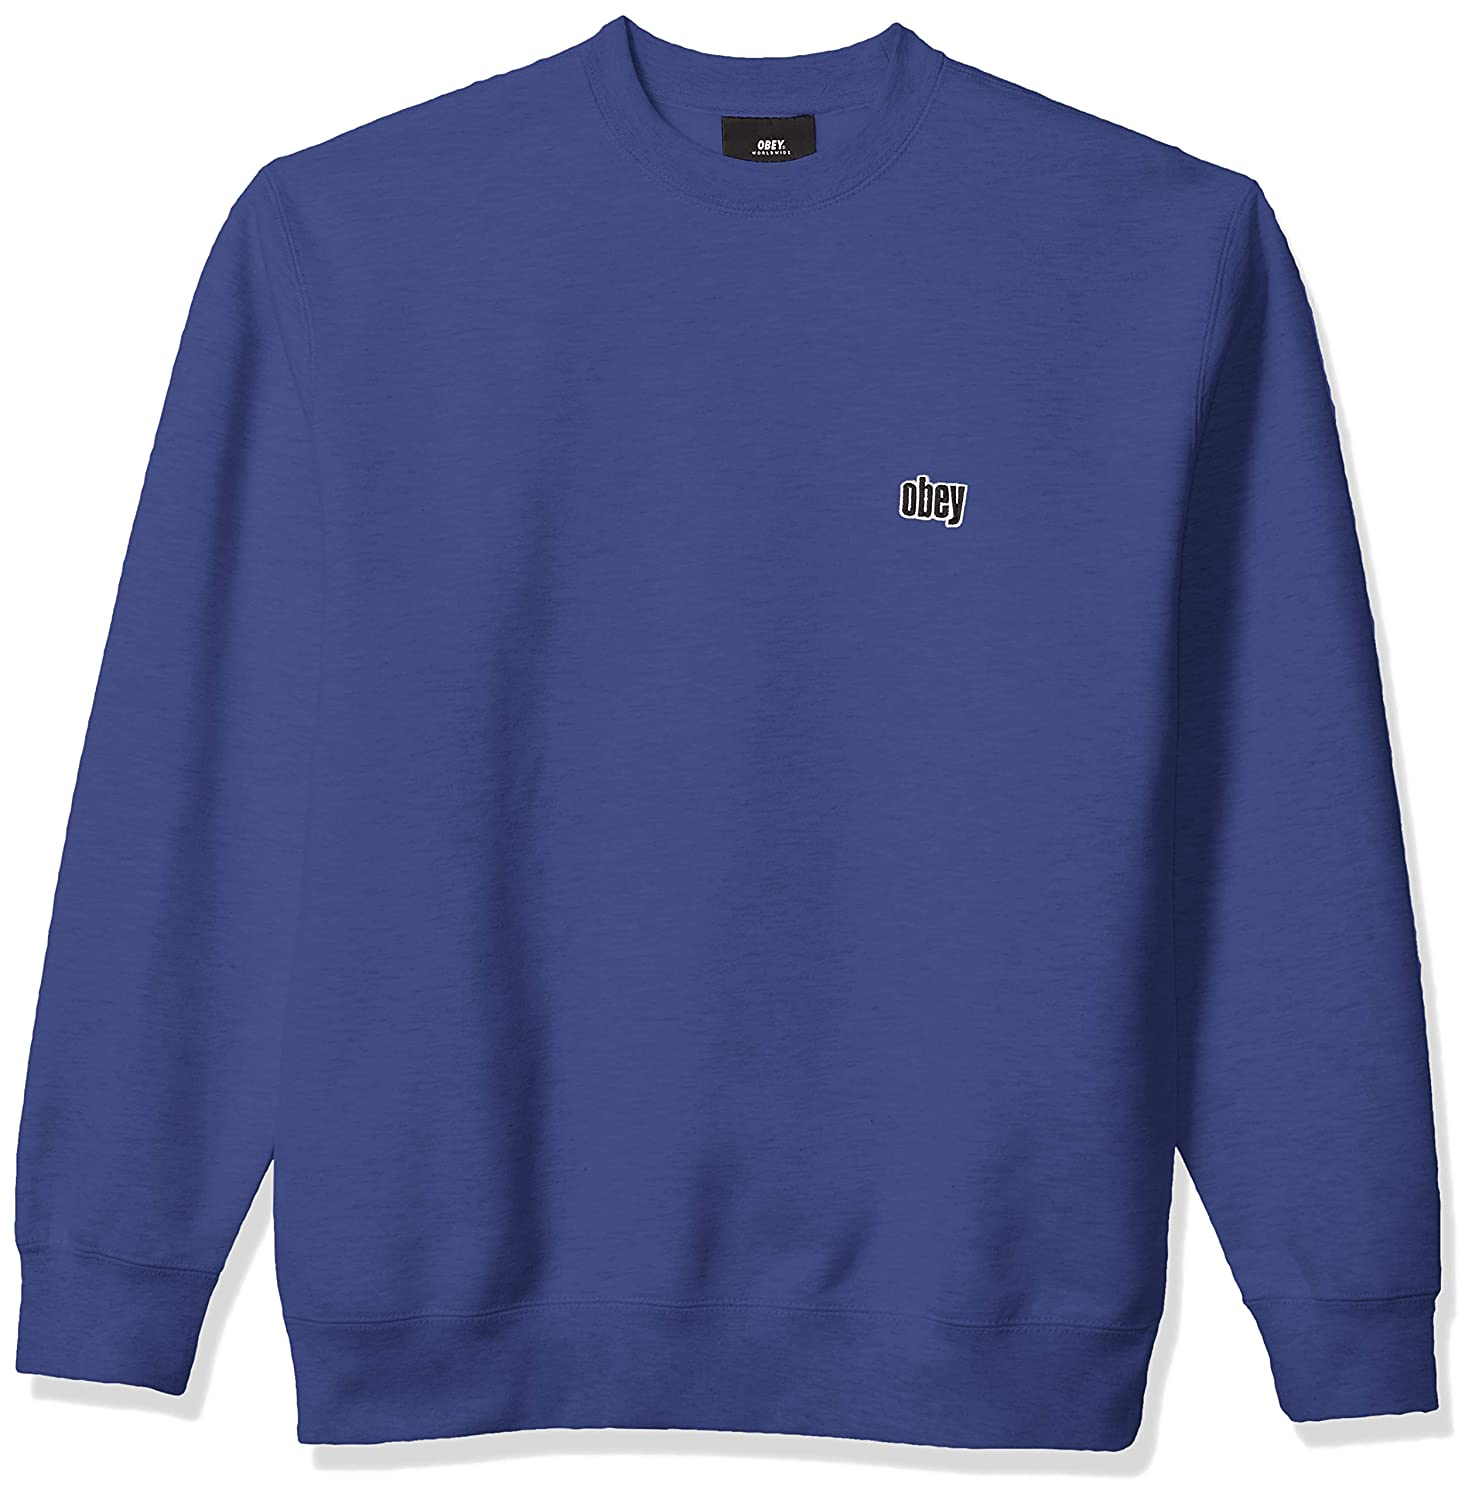 Obey Mens Joy Crewneck Sweatshirt